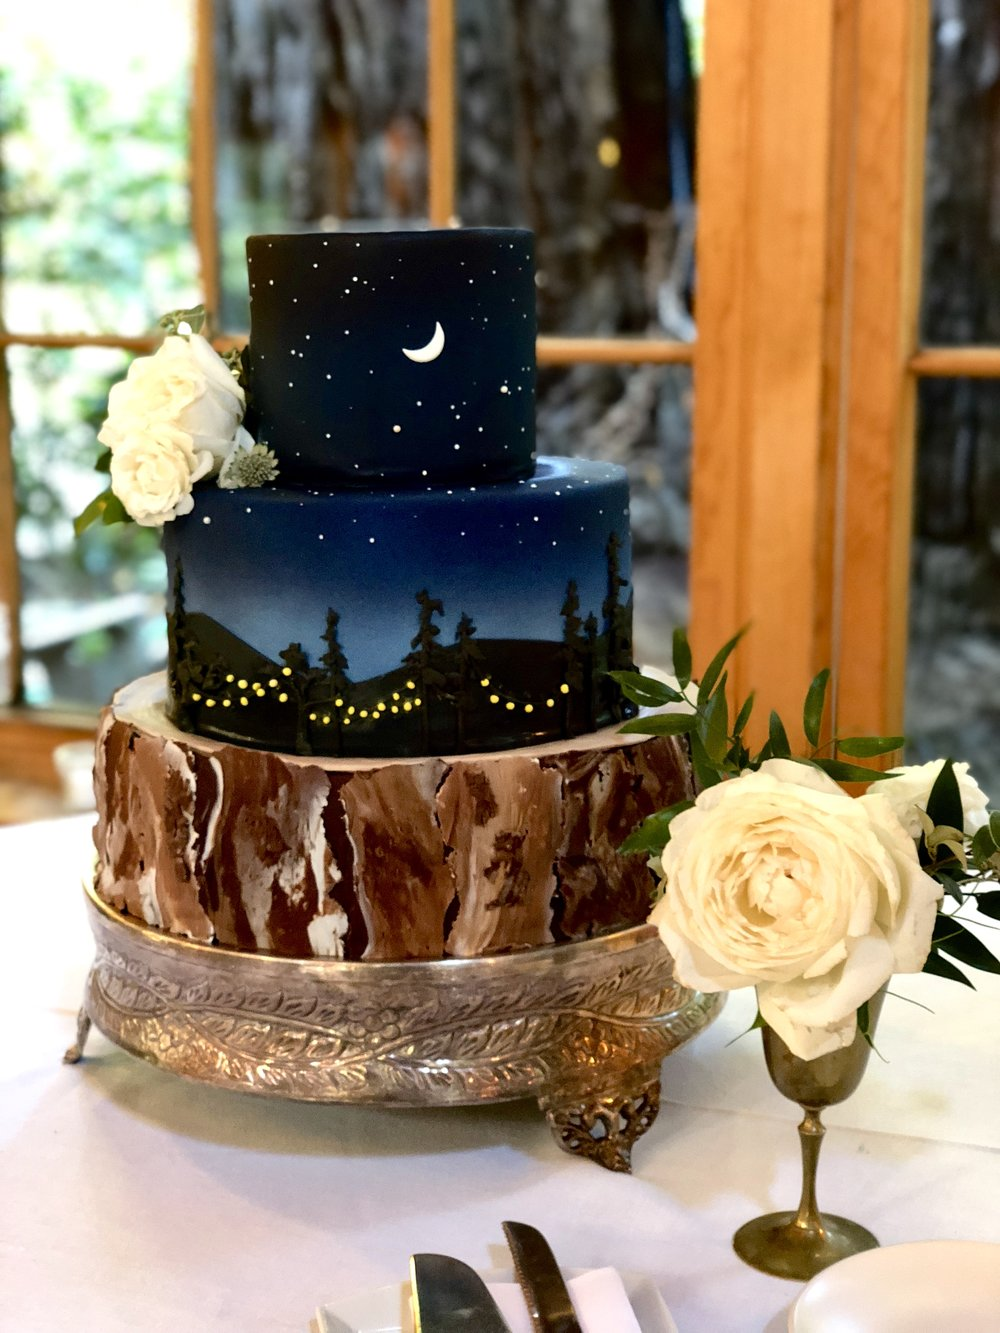 Wedding Cake at Nestldown - 2018 July.jpg